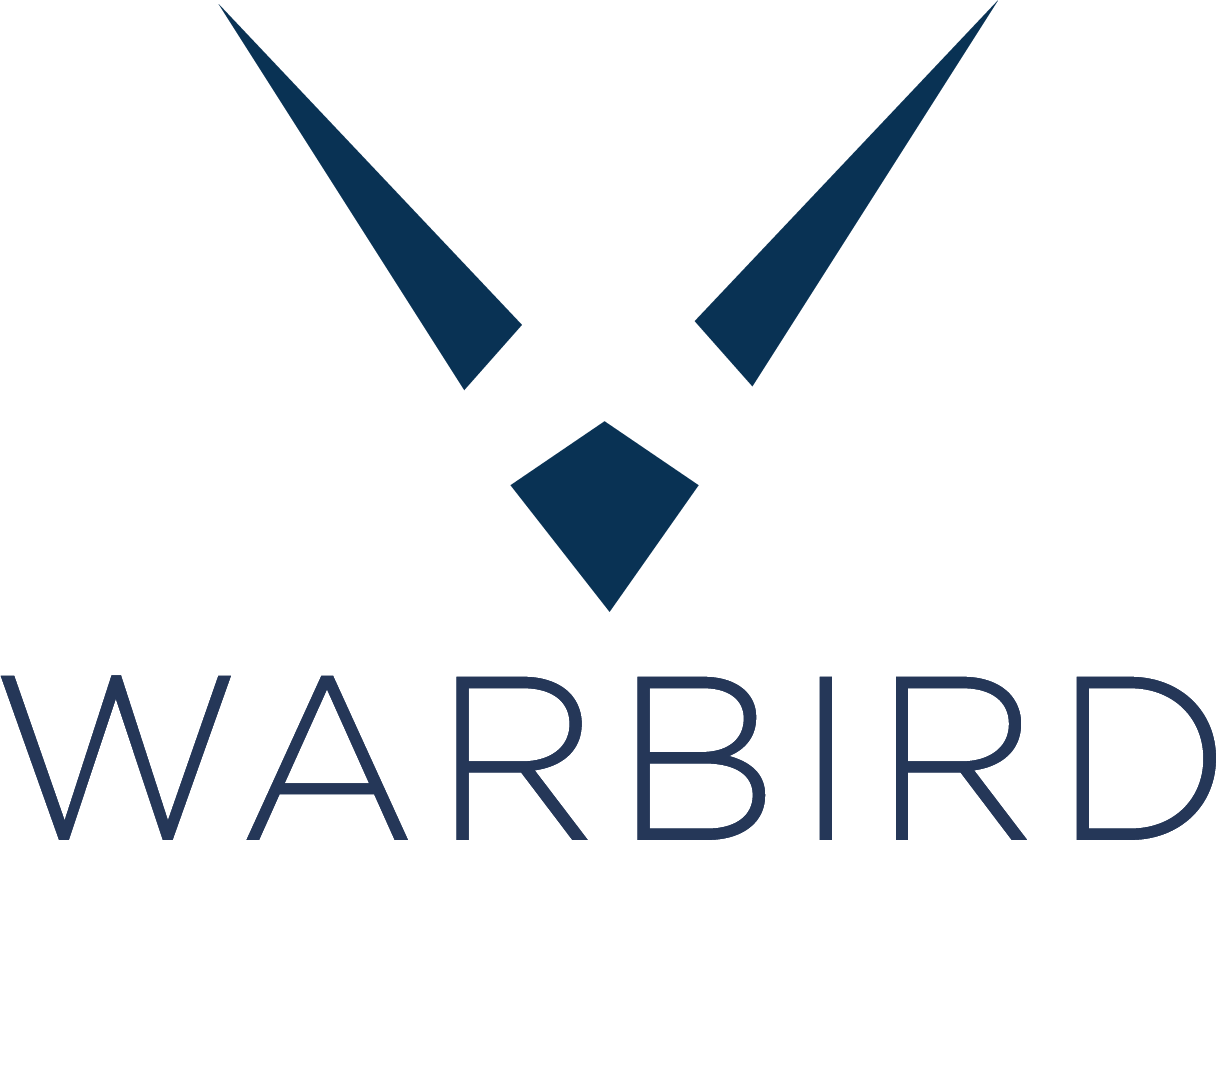 Warbird Government & Financial Institutions Logo